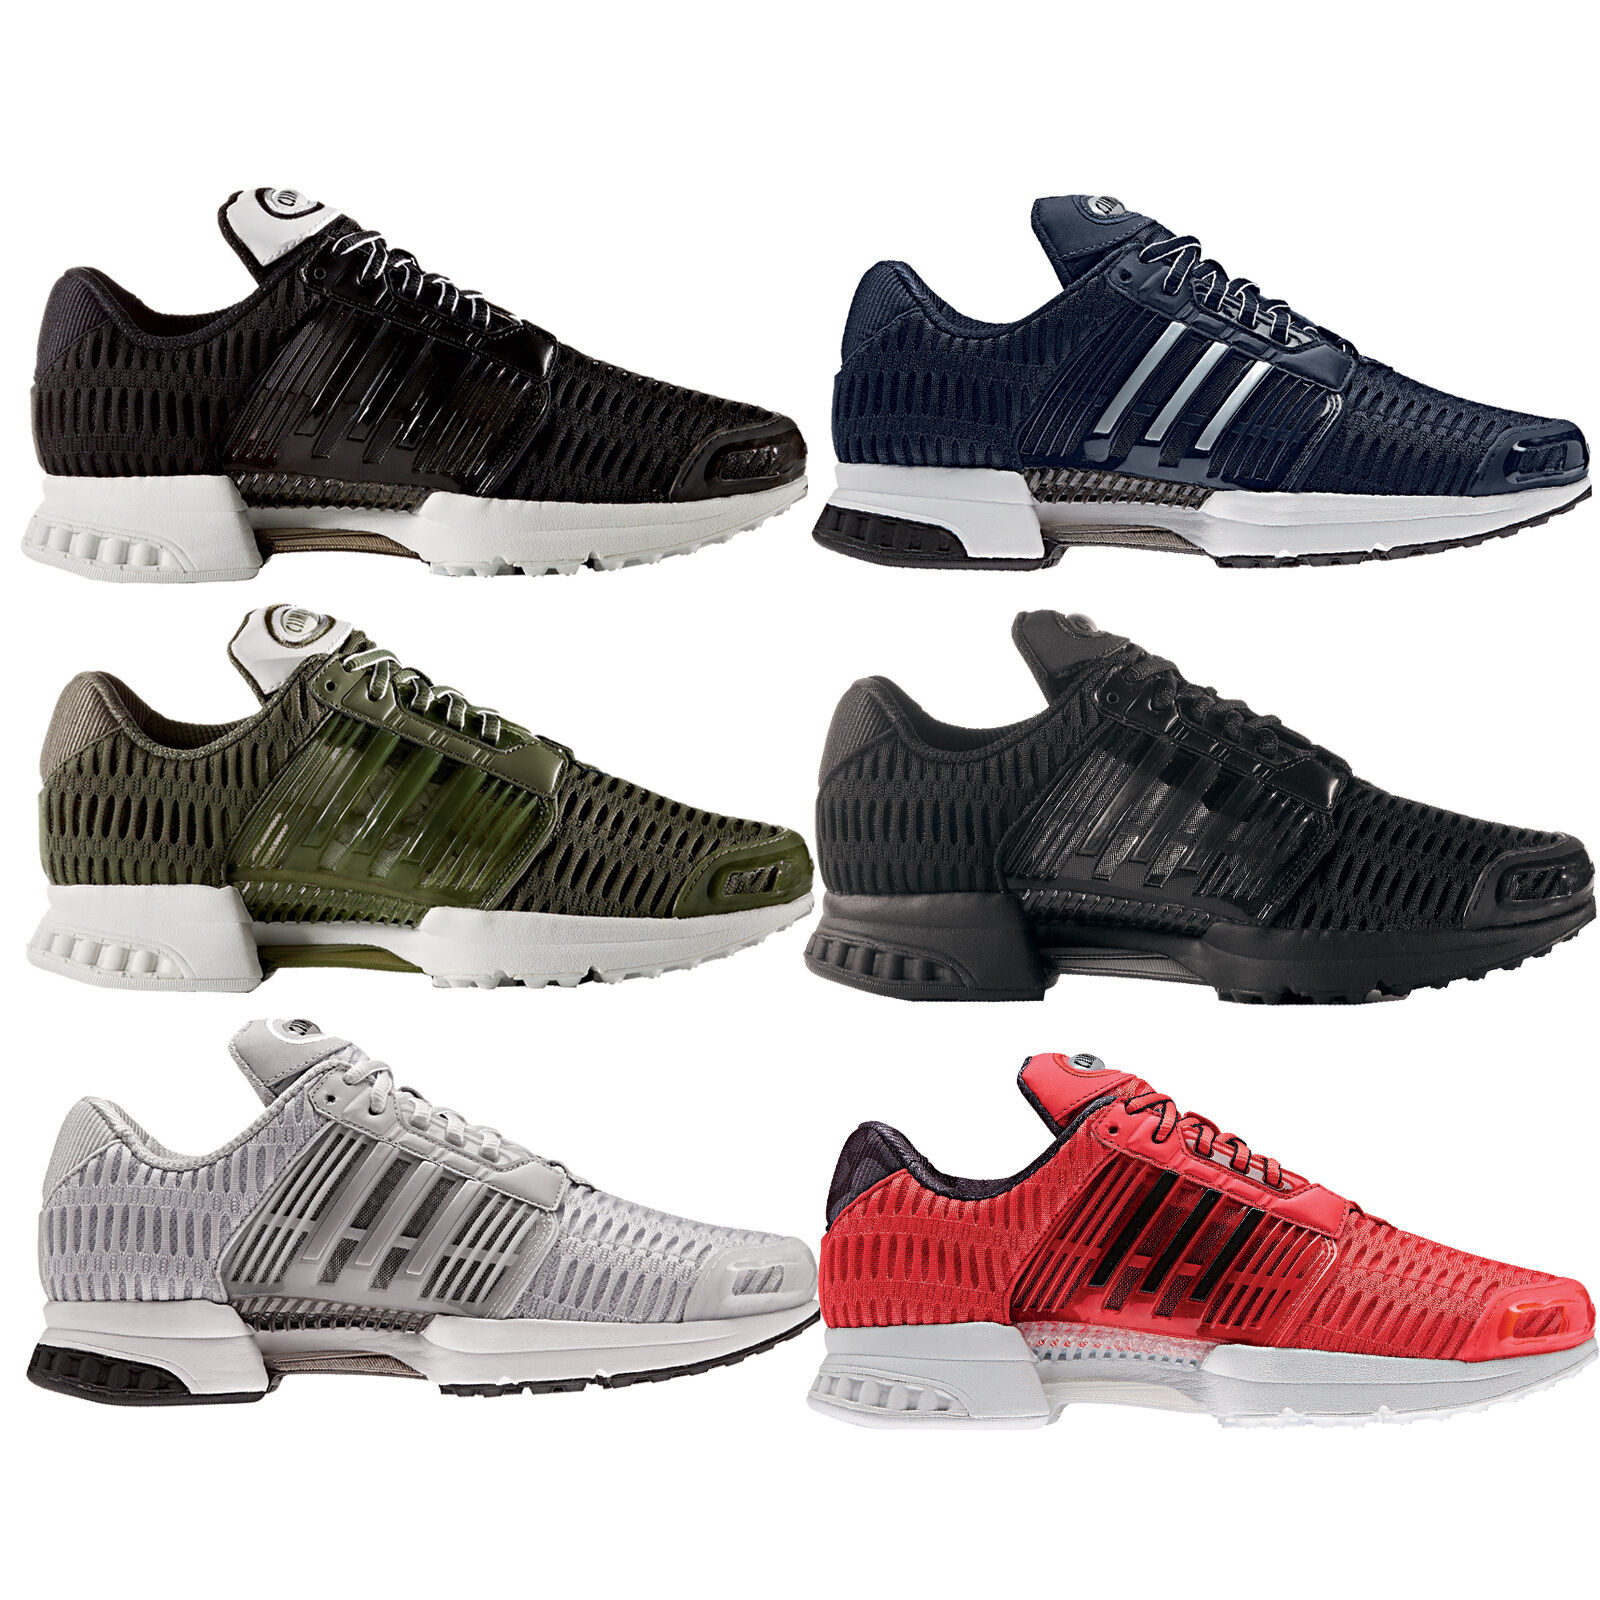 Adidas Originals Clima Cool 1 Climacool shoes Trainers shoes